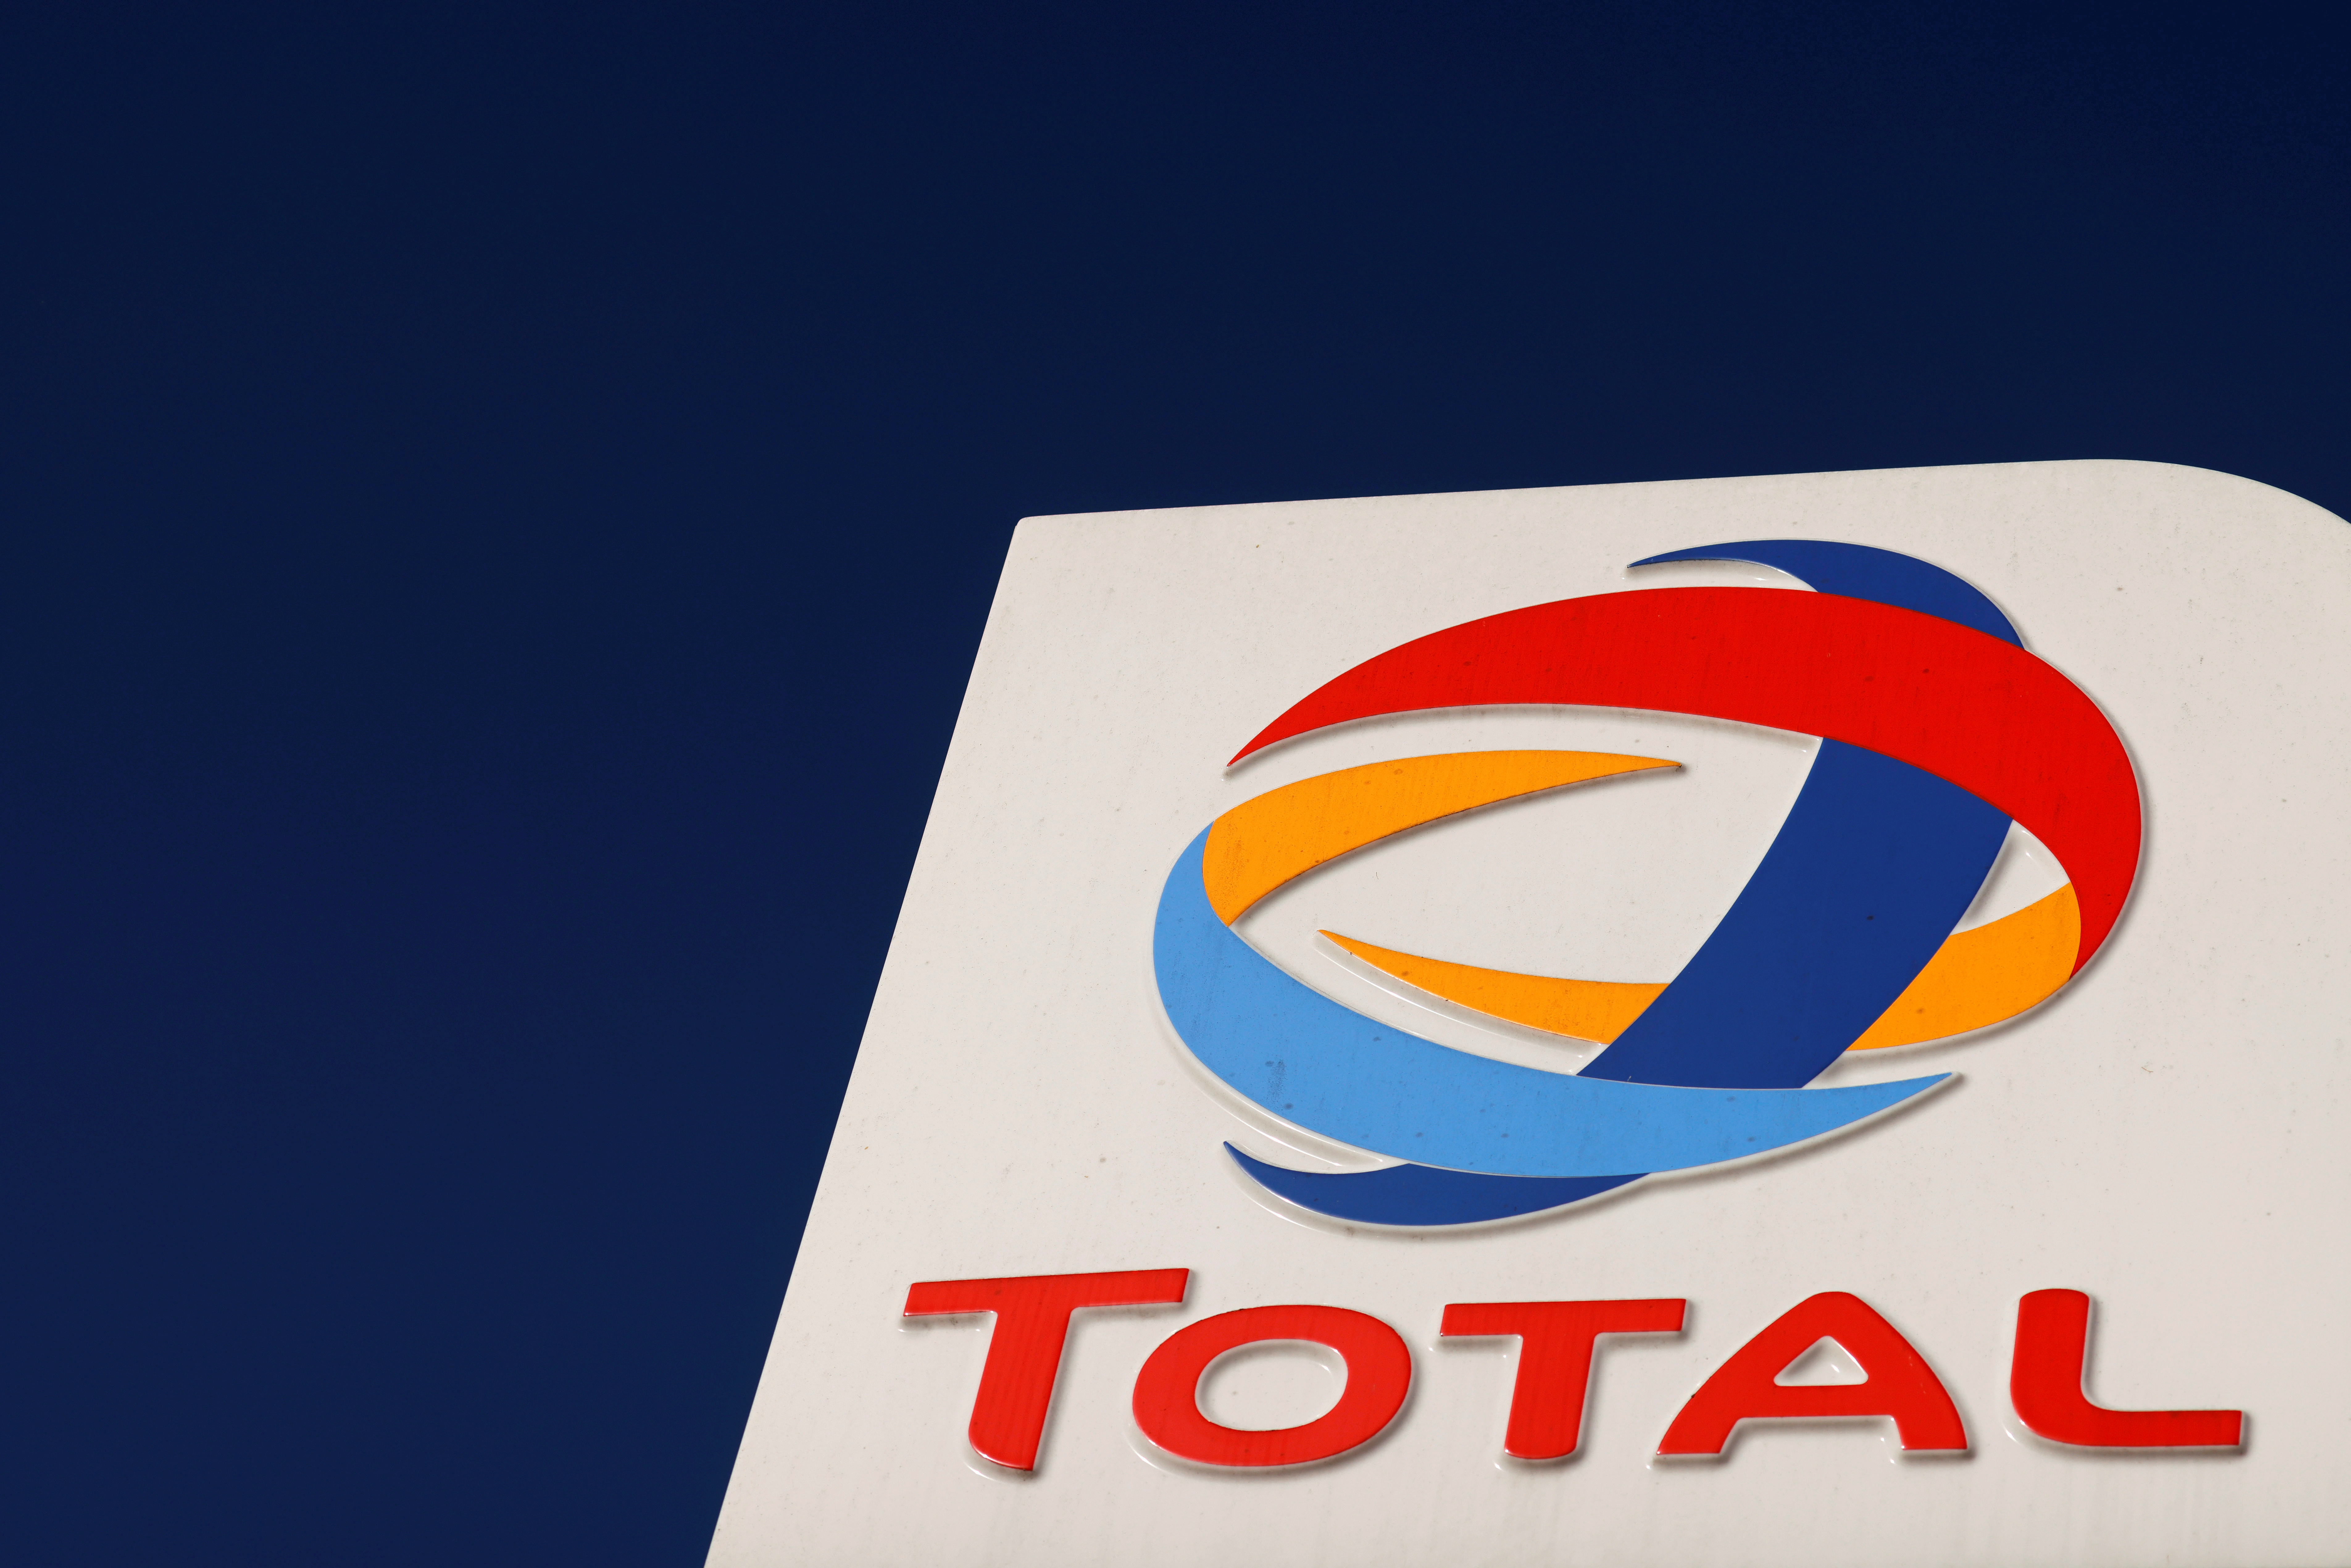 The logo of French oil and gas company Total is seen at a petrol station in Neuville Saint Remy, France, October 1, 2020. REUTERS/Pascal Rossignol/File Photo